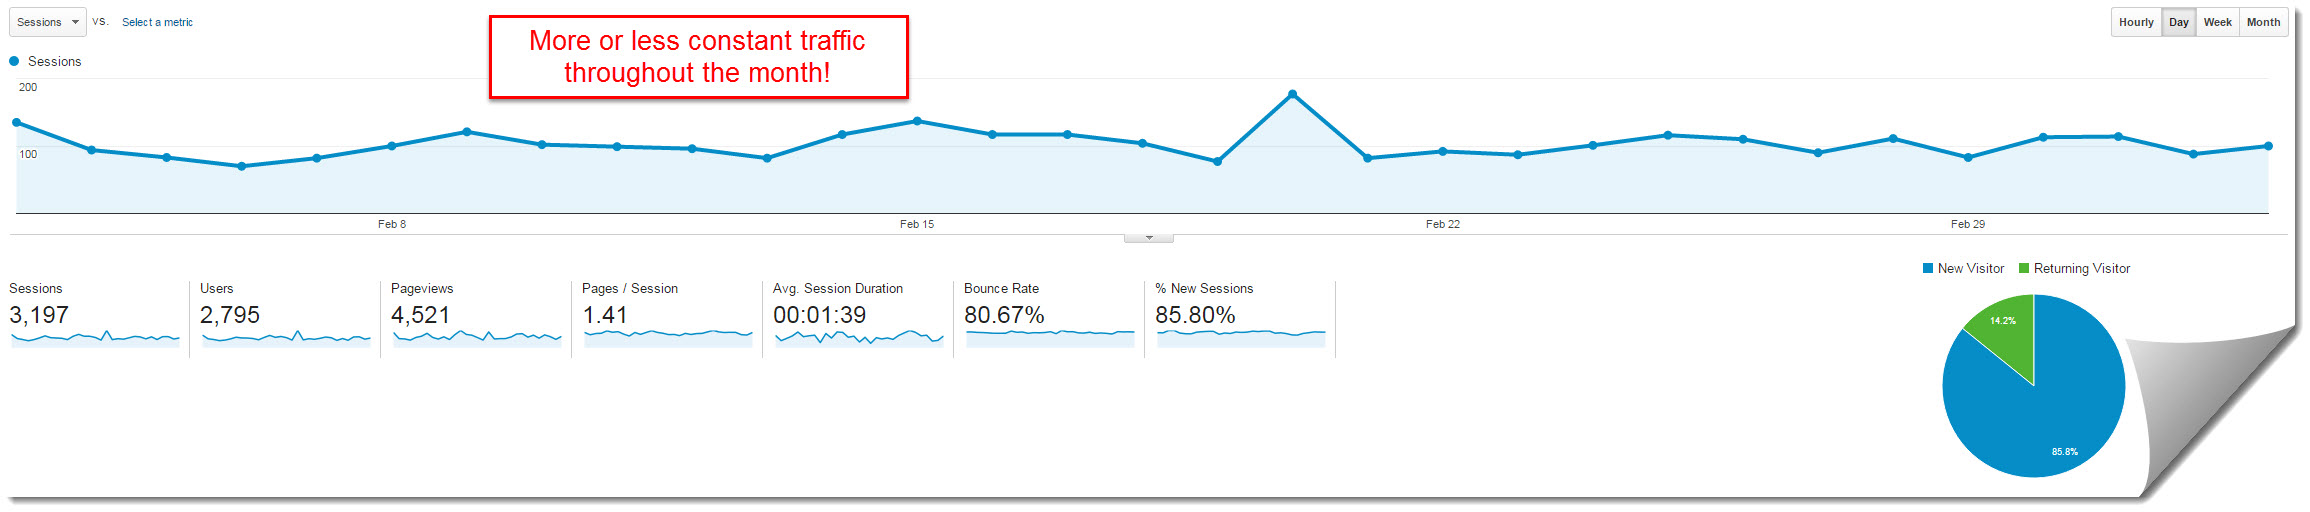 google analytics for my internet quest february 2016